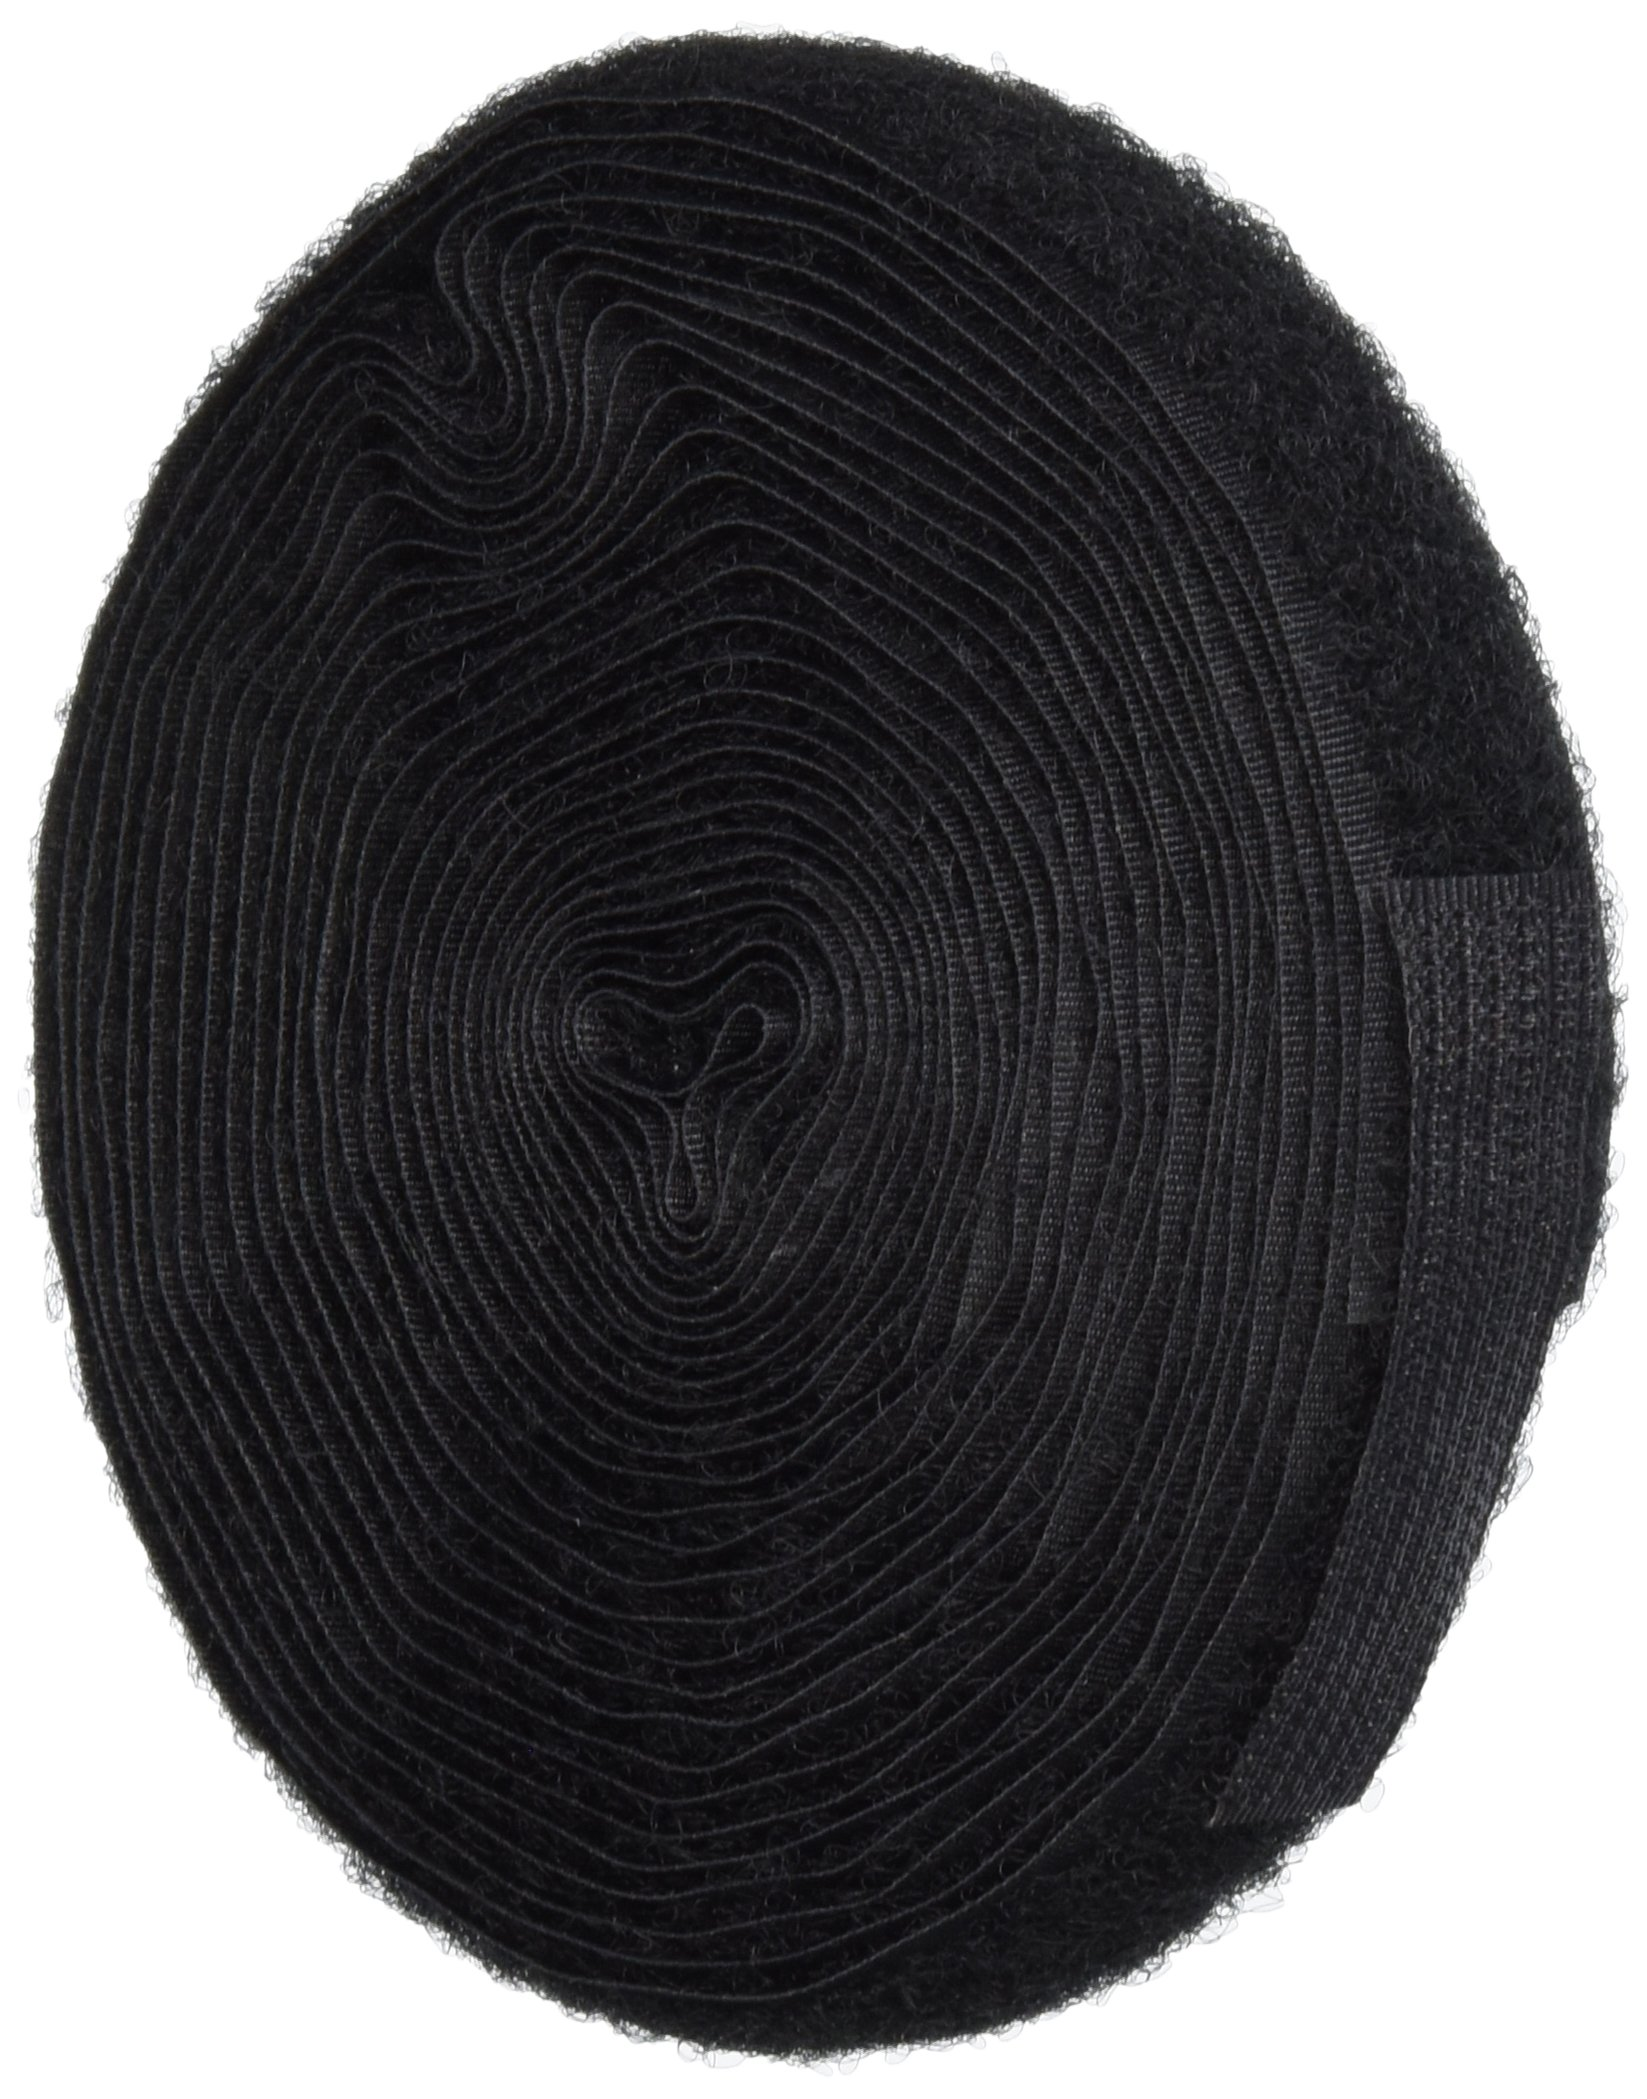 VELCRO 1002-AP-PB/L Black Nylon Woven Fastening Tape, Standard Back, Sew-On Loop Only, 5/8'' Wide, 15' Length by Velcro